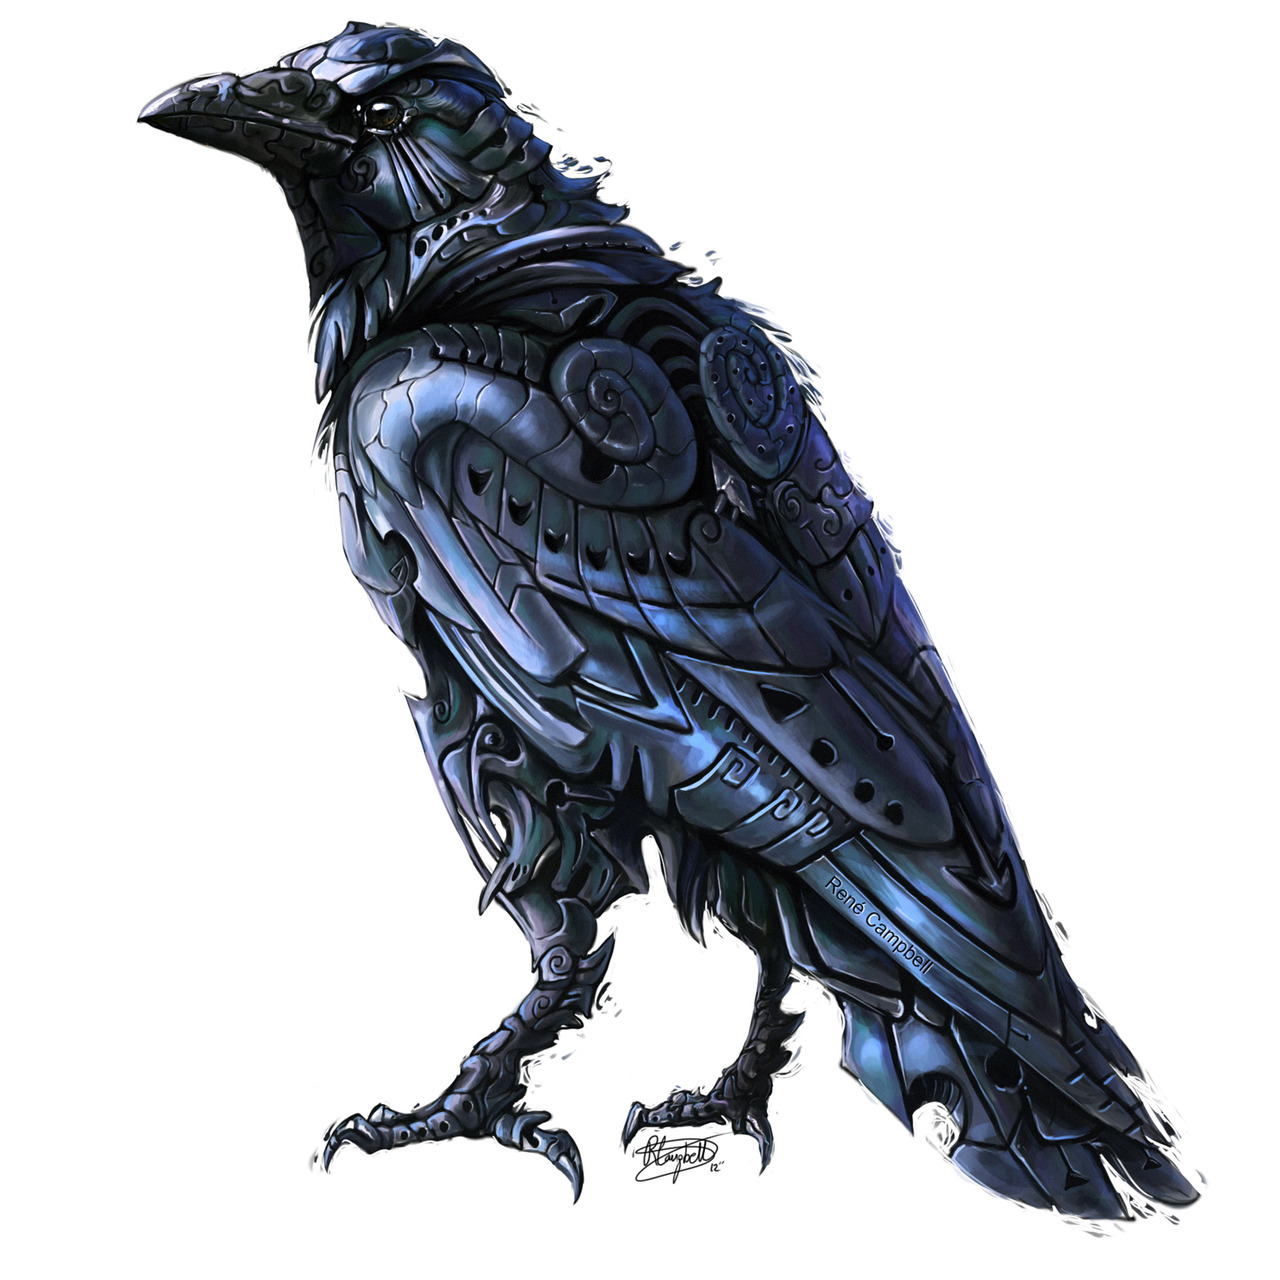 rene-art:  DeviserIllustrative interpretation of the Crow; this time with some digital colour! Got a bit lazy with it but it will do!Photoshop CS5 | Wacom Intuos 4 | App. 5-6 Hours.